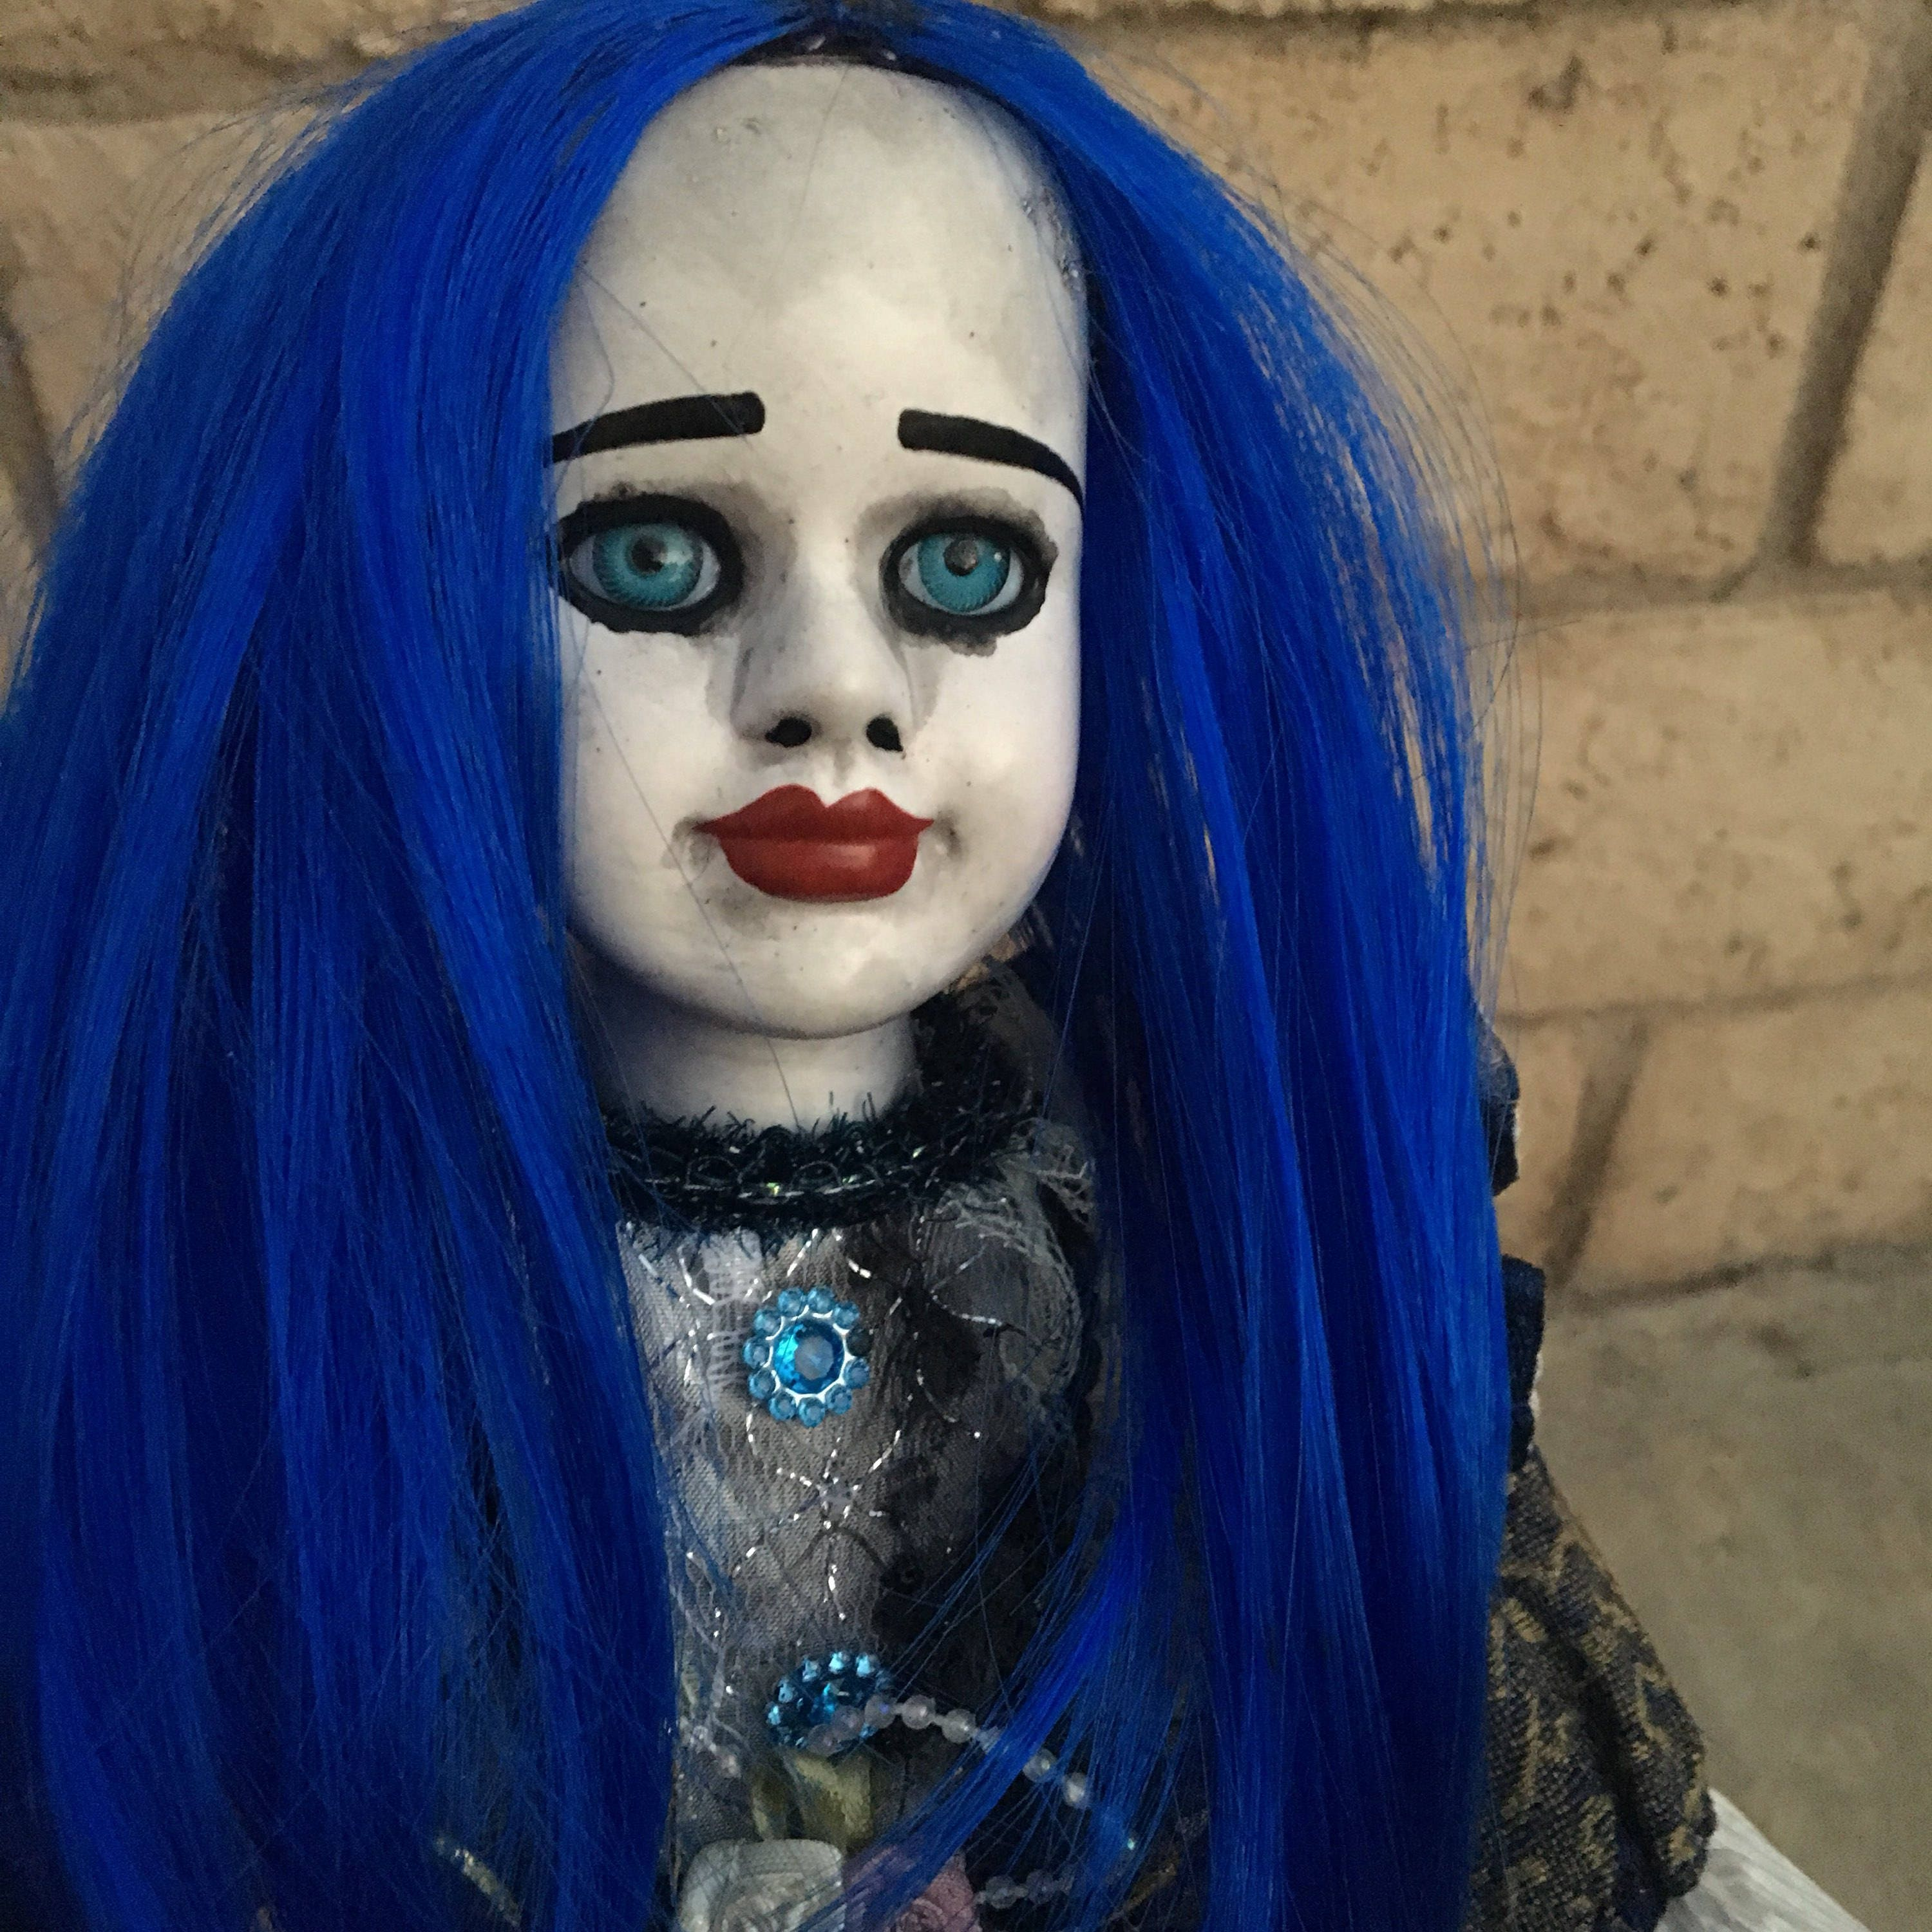 art doll ooak doll halloween doll horror doll creepy doll gothic doll porcelain doll custom doll blue hair